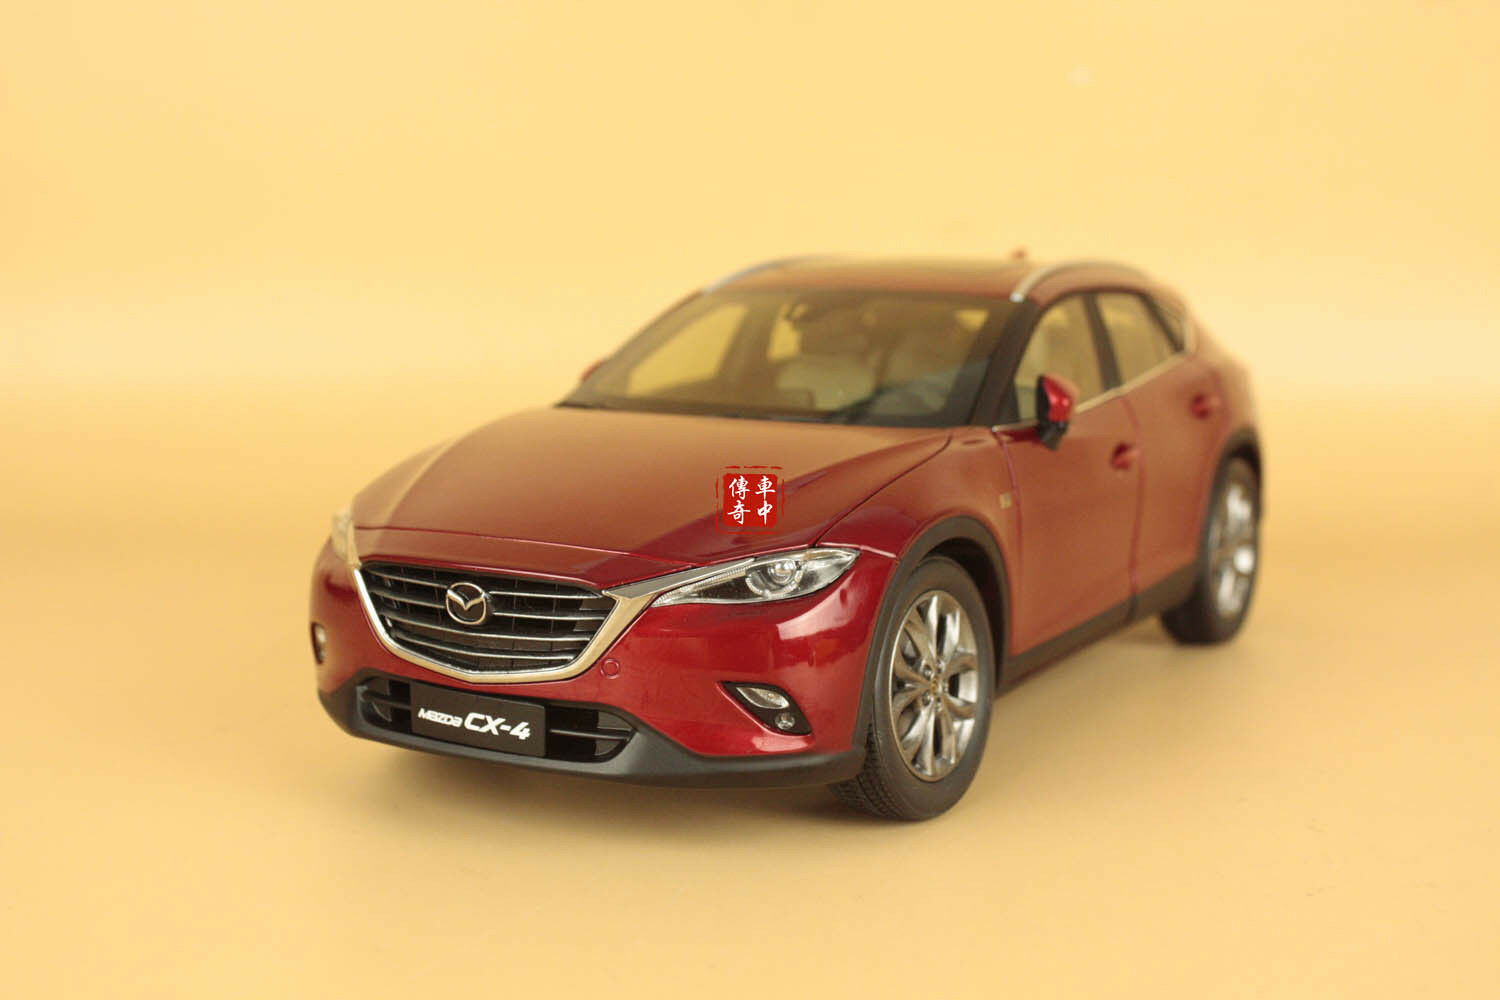 1 18 2016 Nuevo Mazda cx-4 Modelo Coloree rosso + Regalo